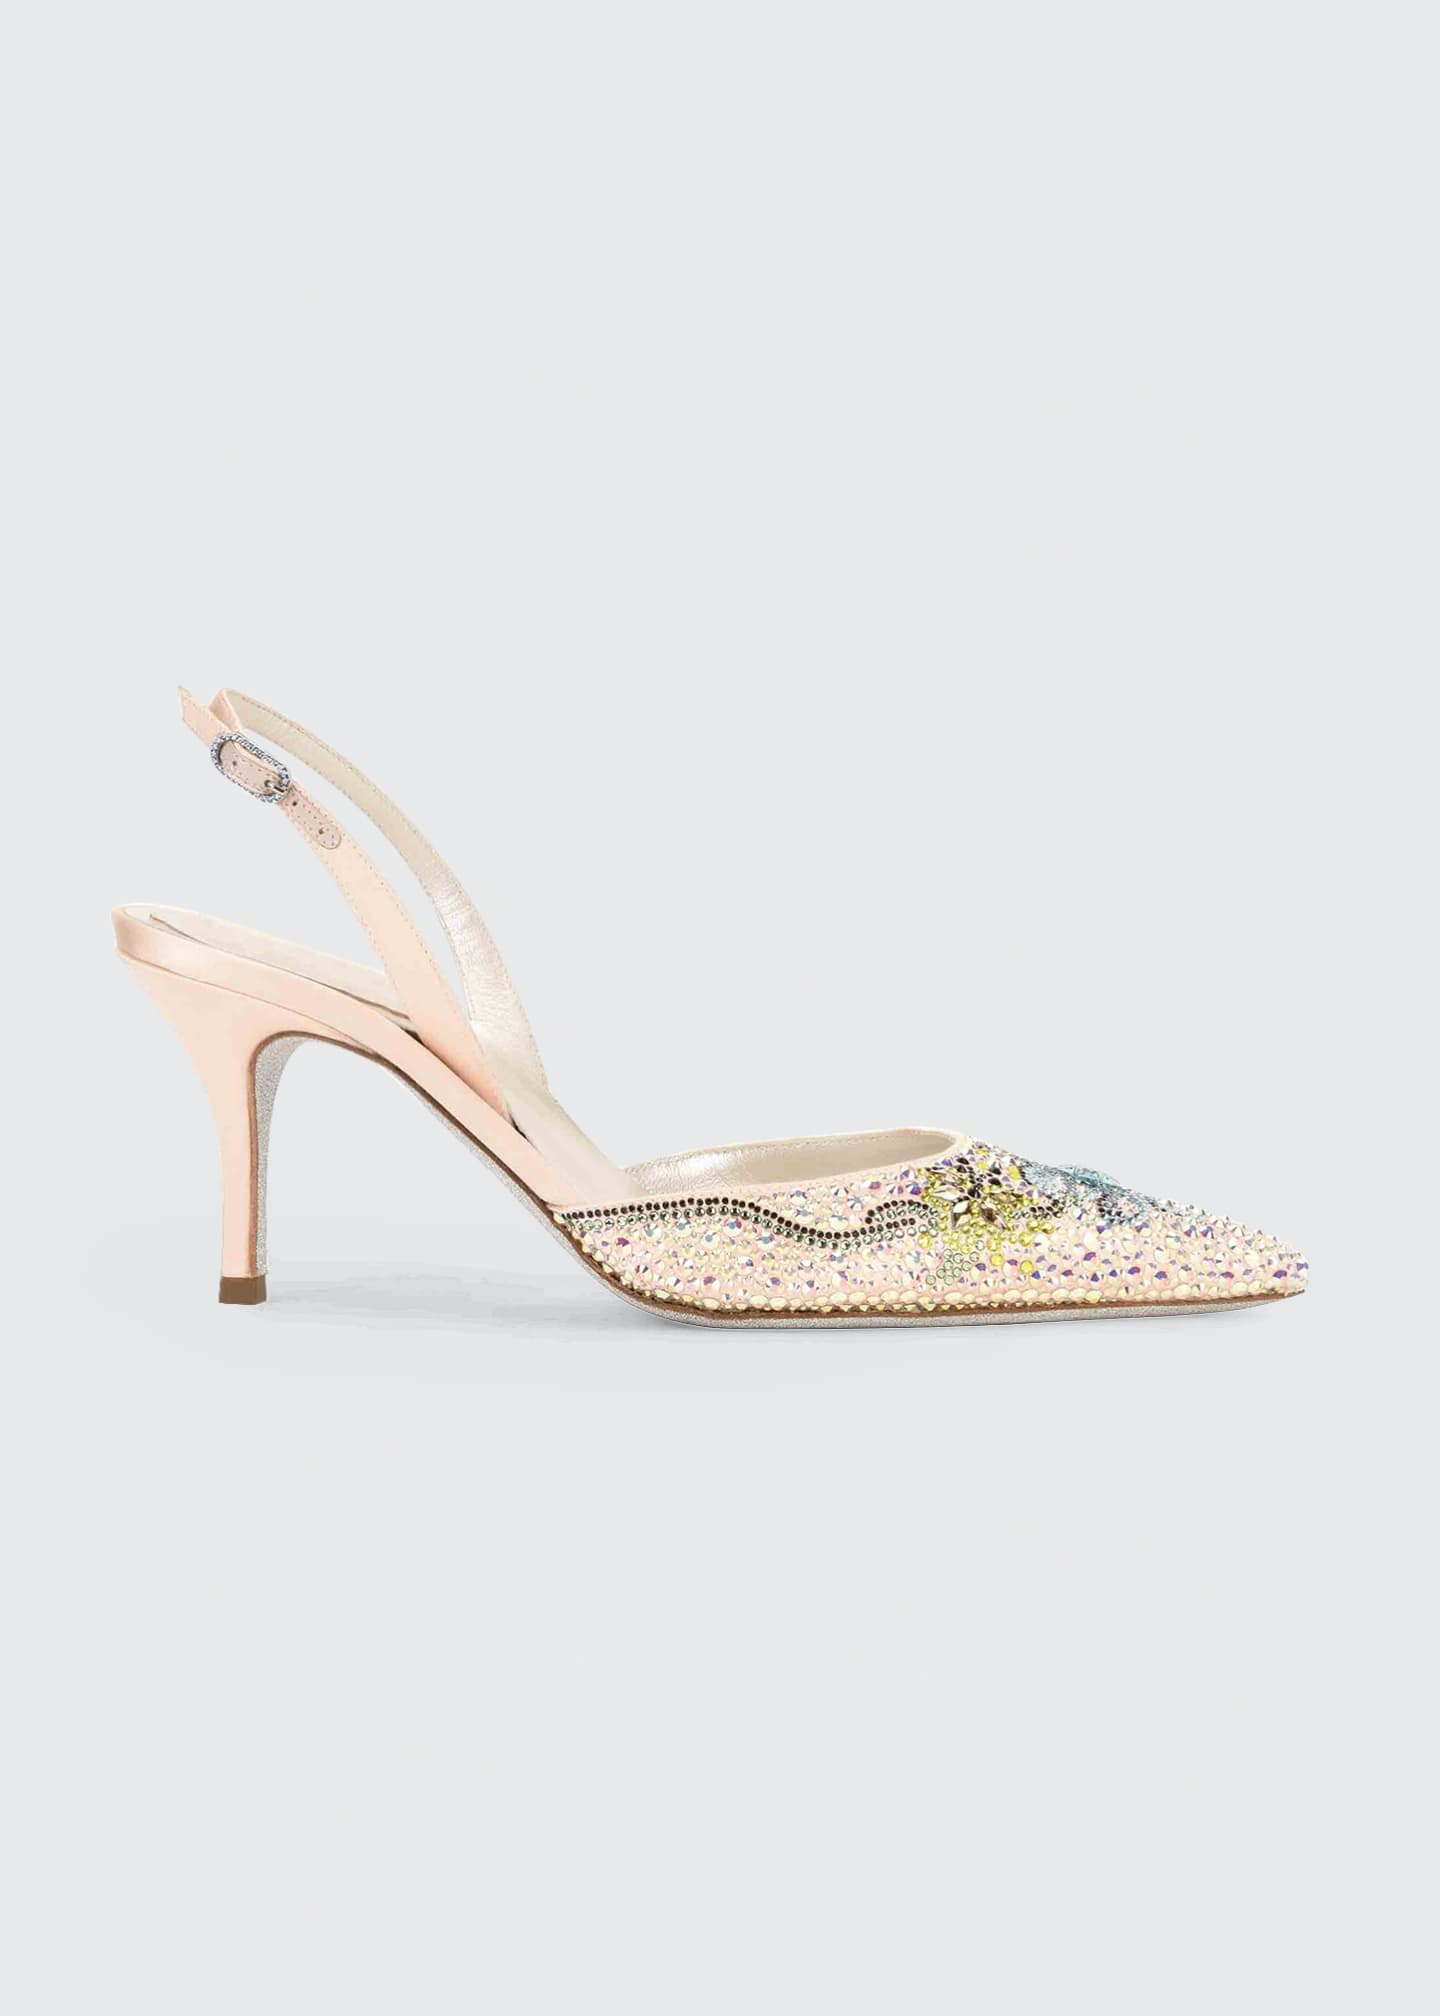 Rene Caovilla Beaded Satin Cocktail Slingback Pumps